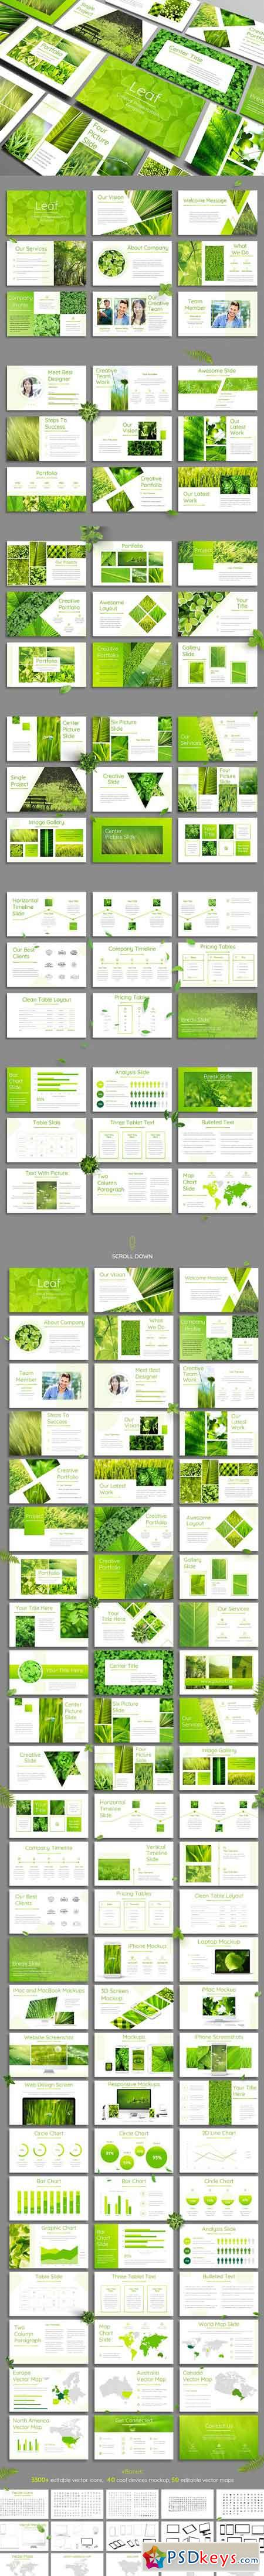 Leaf - Powerpoint Template 2682247